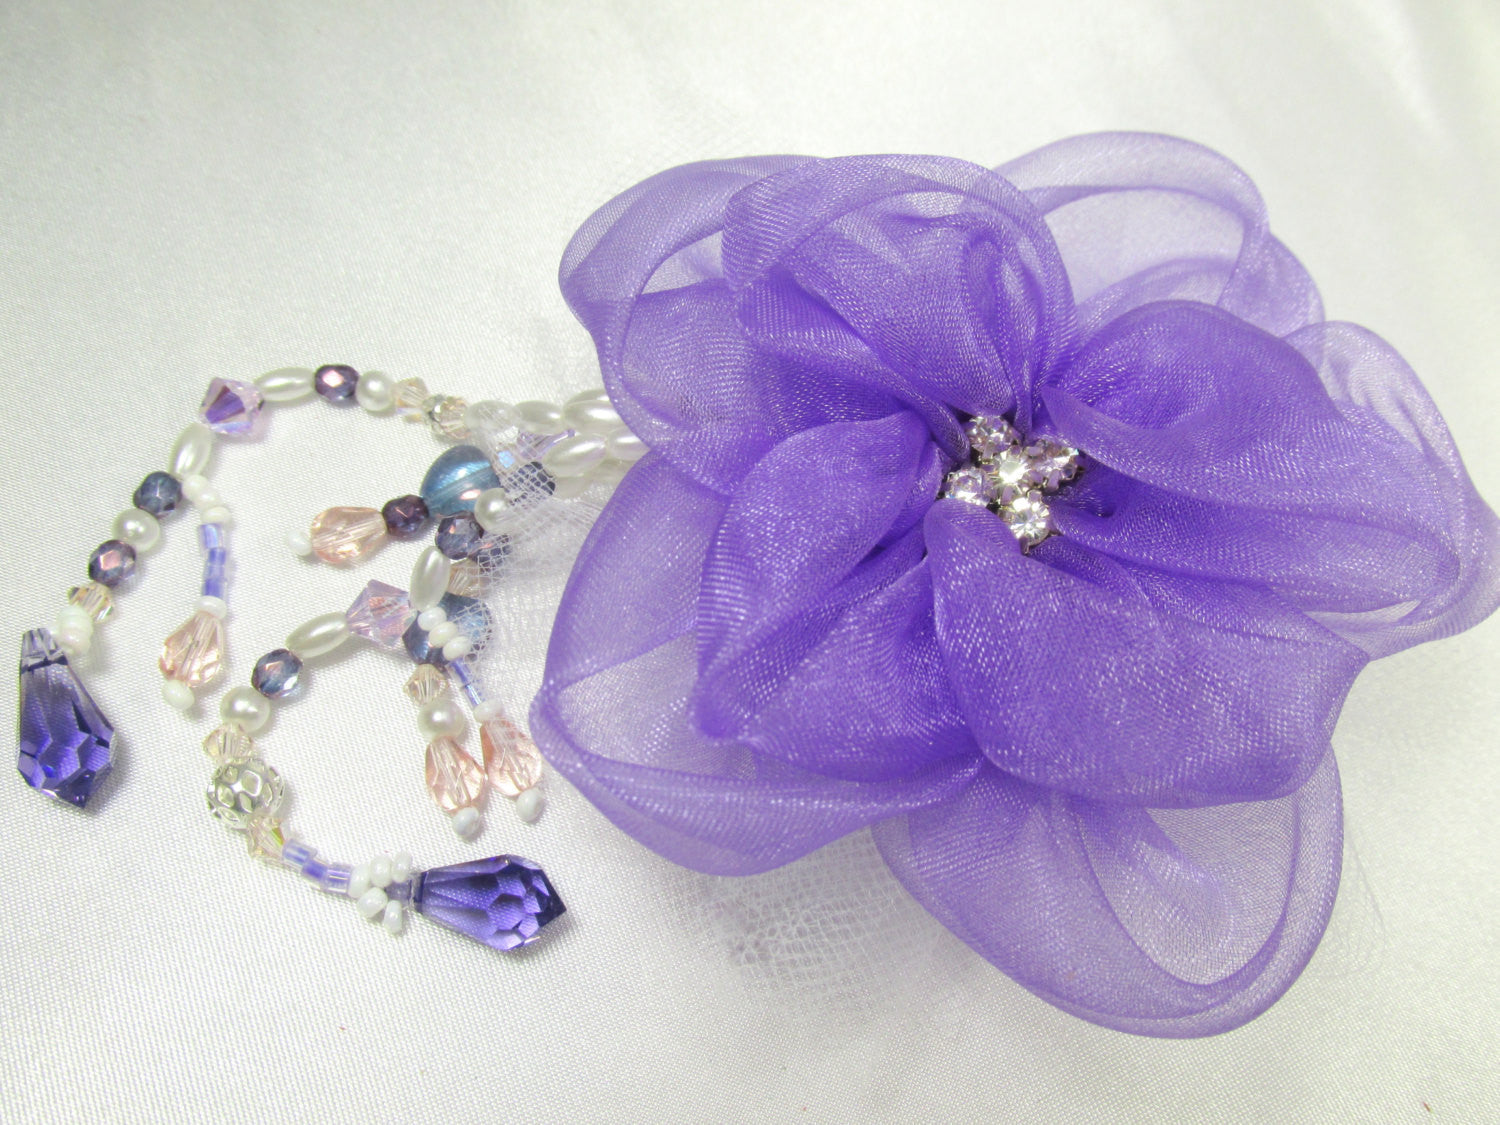 Radiant Orchid Silk Organza Flower Hair Clip or Brooch with Swarovski Teardrops - Odyssey Creations